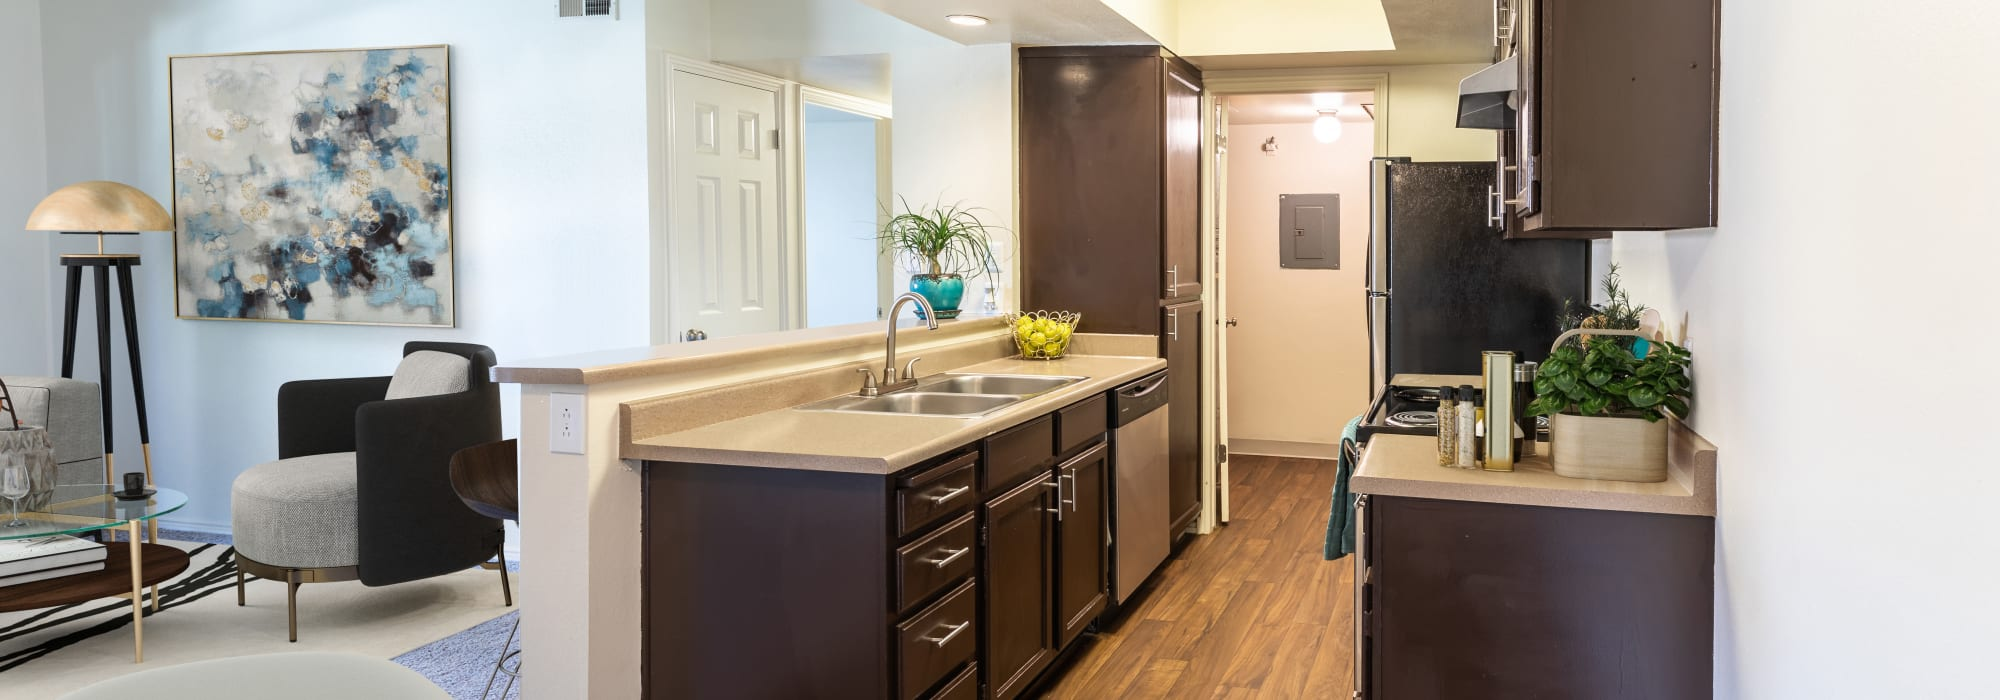 Pet friendly living at Shadowbrook Apartments in West Valley City, Utah